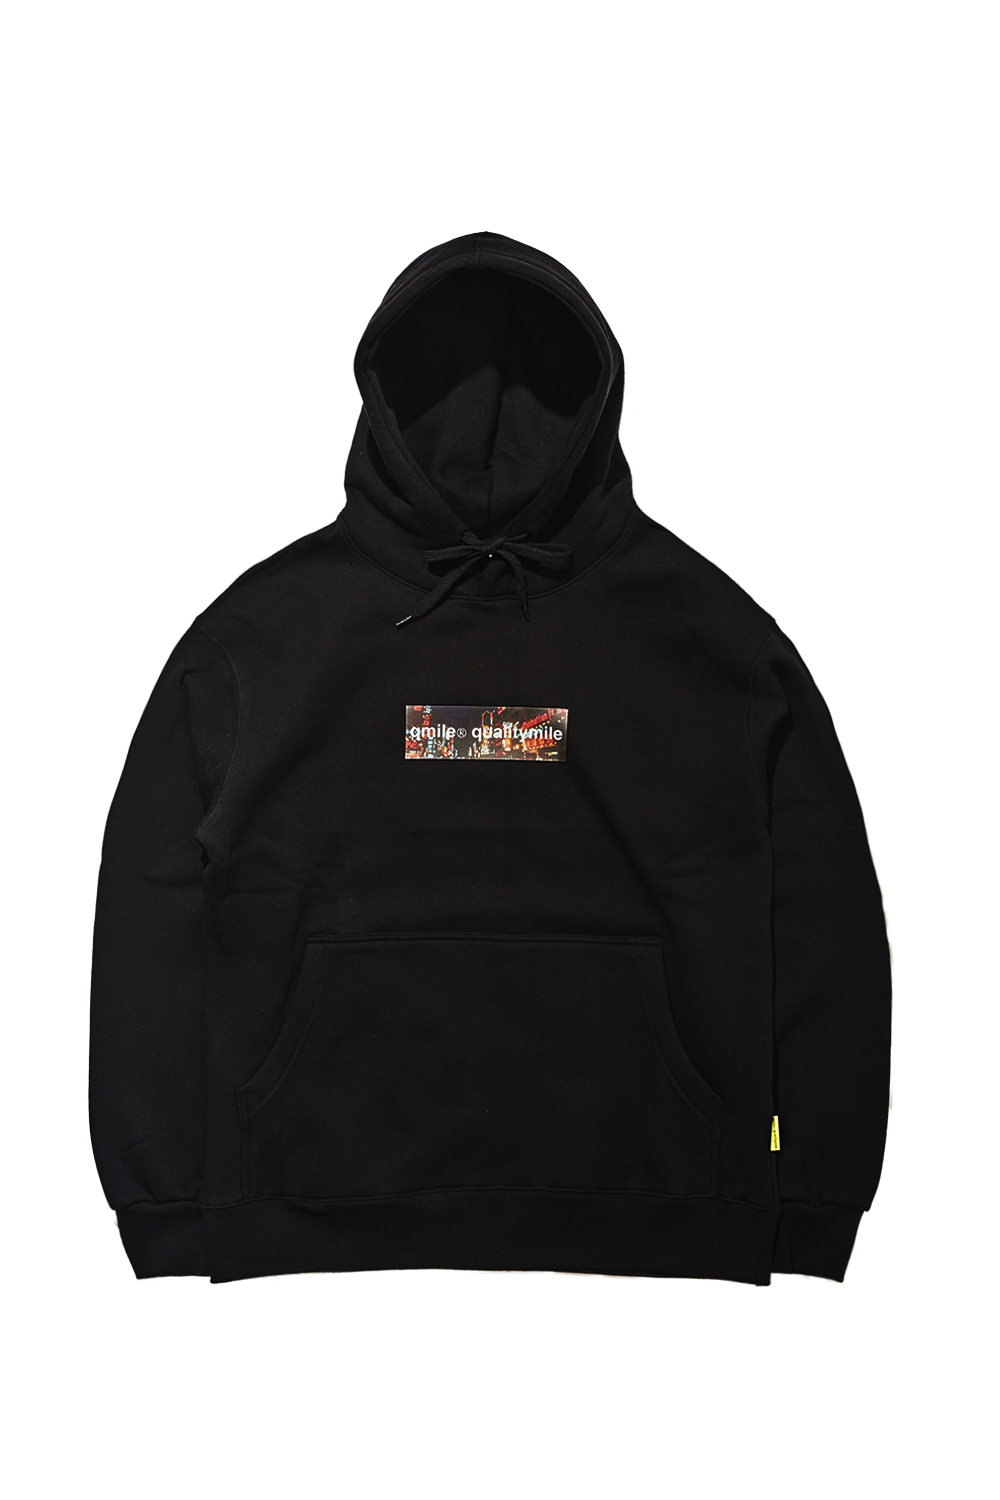 OLD SEOUL NIGHT HOODIE SWEATSHIRTS | BLACK